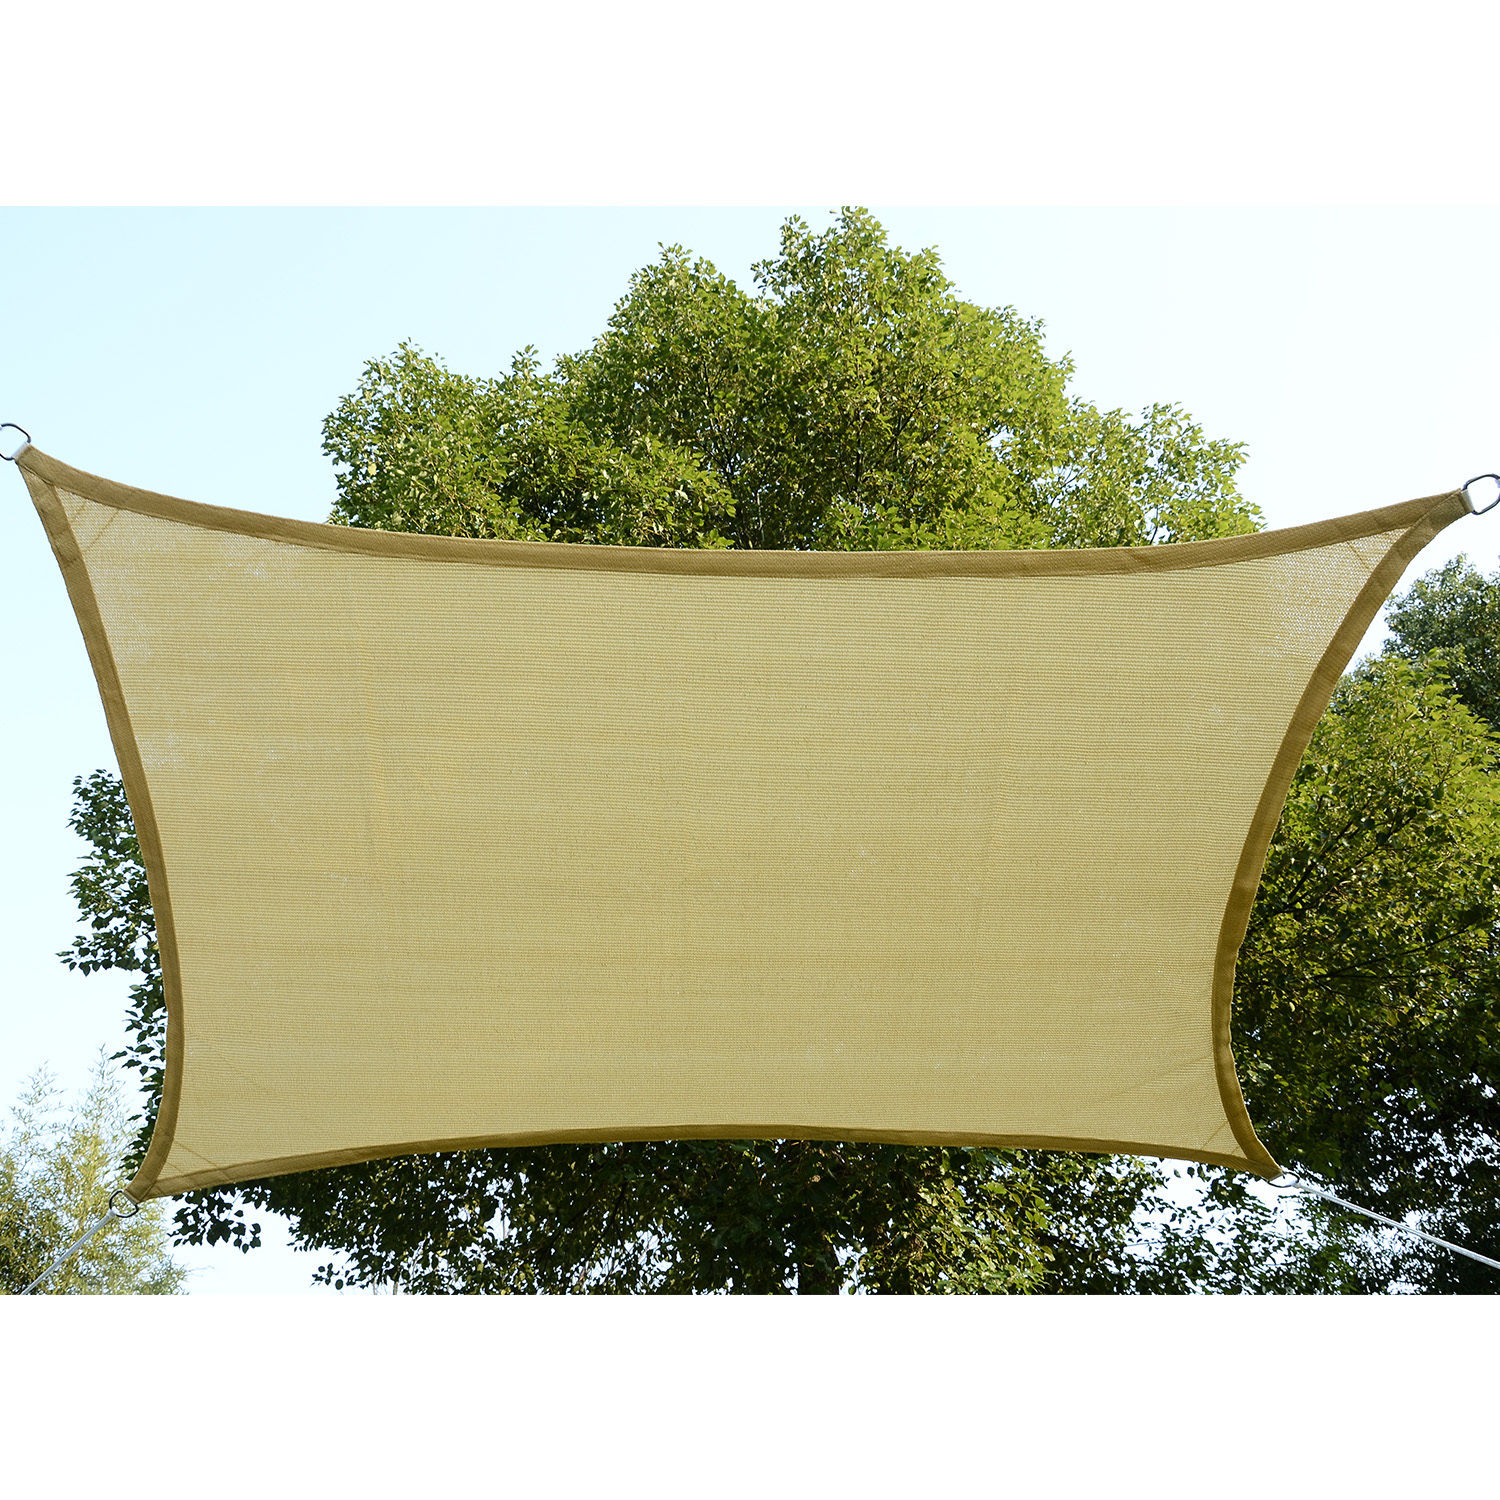 Sun-Shade-Sail-UV-Top-Cover-Outdoor-Canopy-Patio-Triangle-Square-Rectangle-w-Bag thumbnail 33